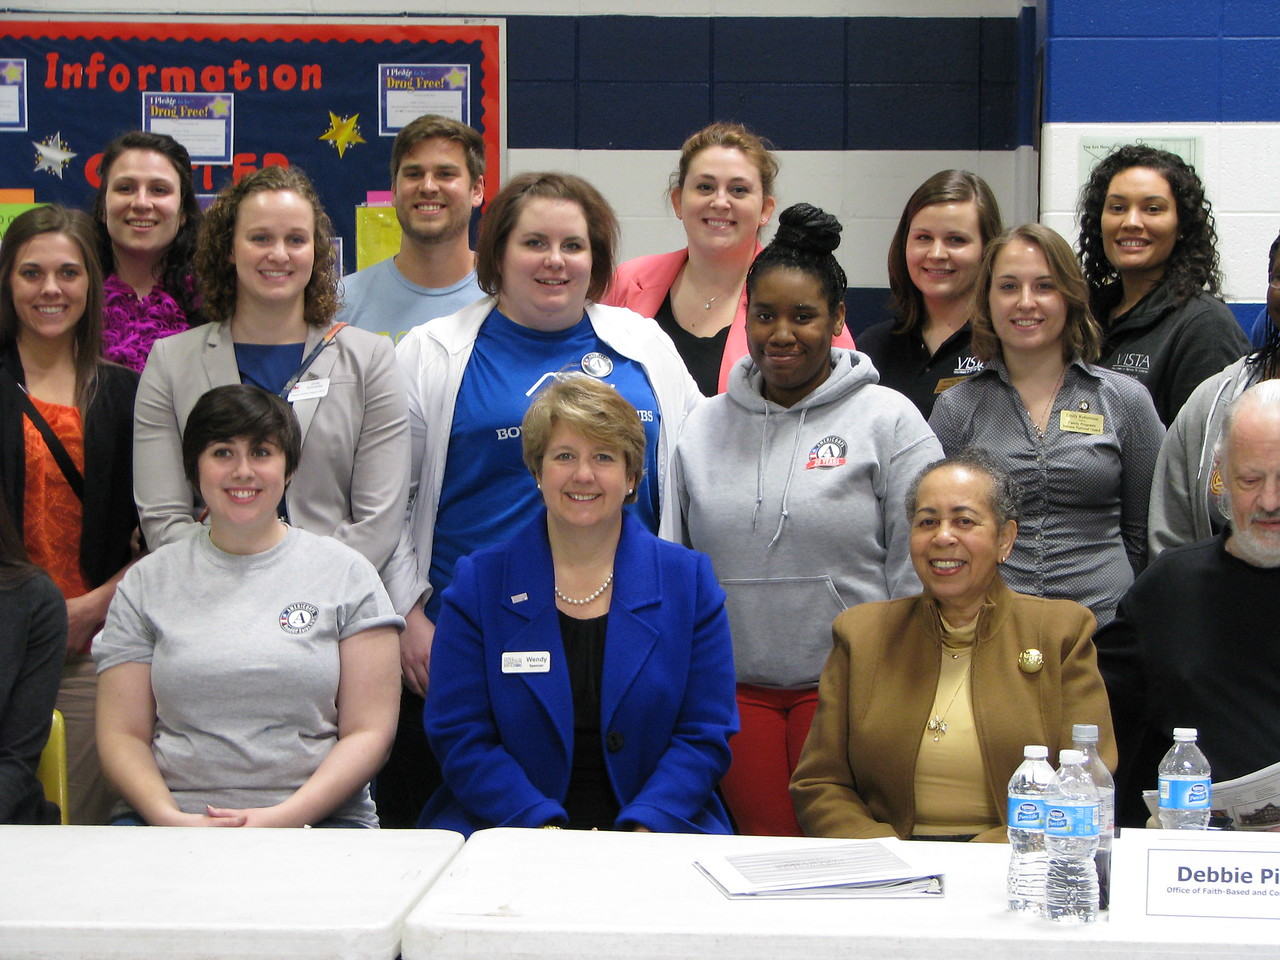 CNCS CEO Wendy Spencer flanked by national service participants in Indianapolis, IN for the Mayors Day of Recognition for National Service on April 1, 2014. Corporation for National and Community Service Photo.